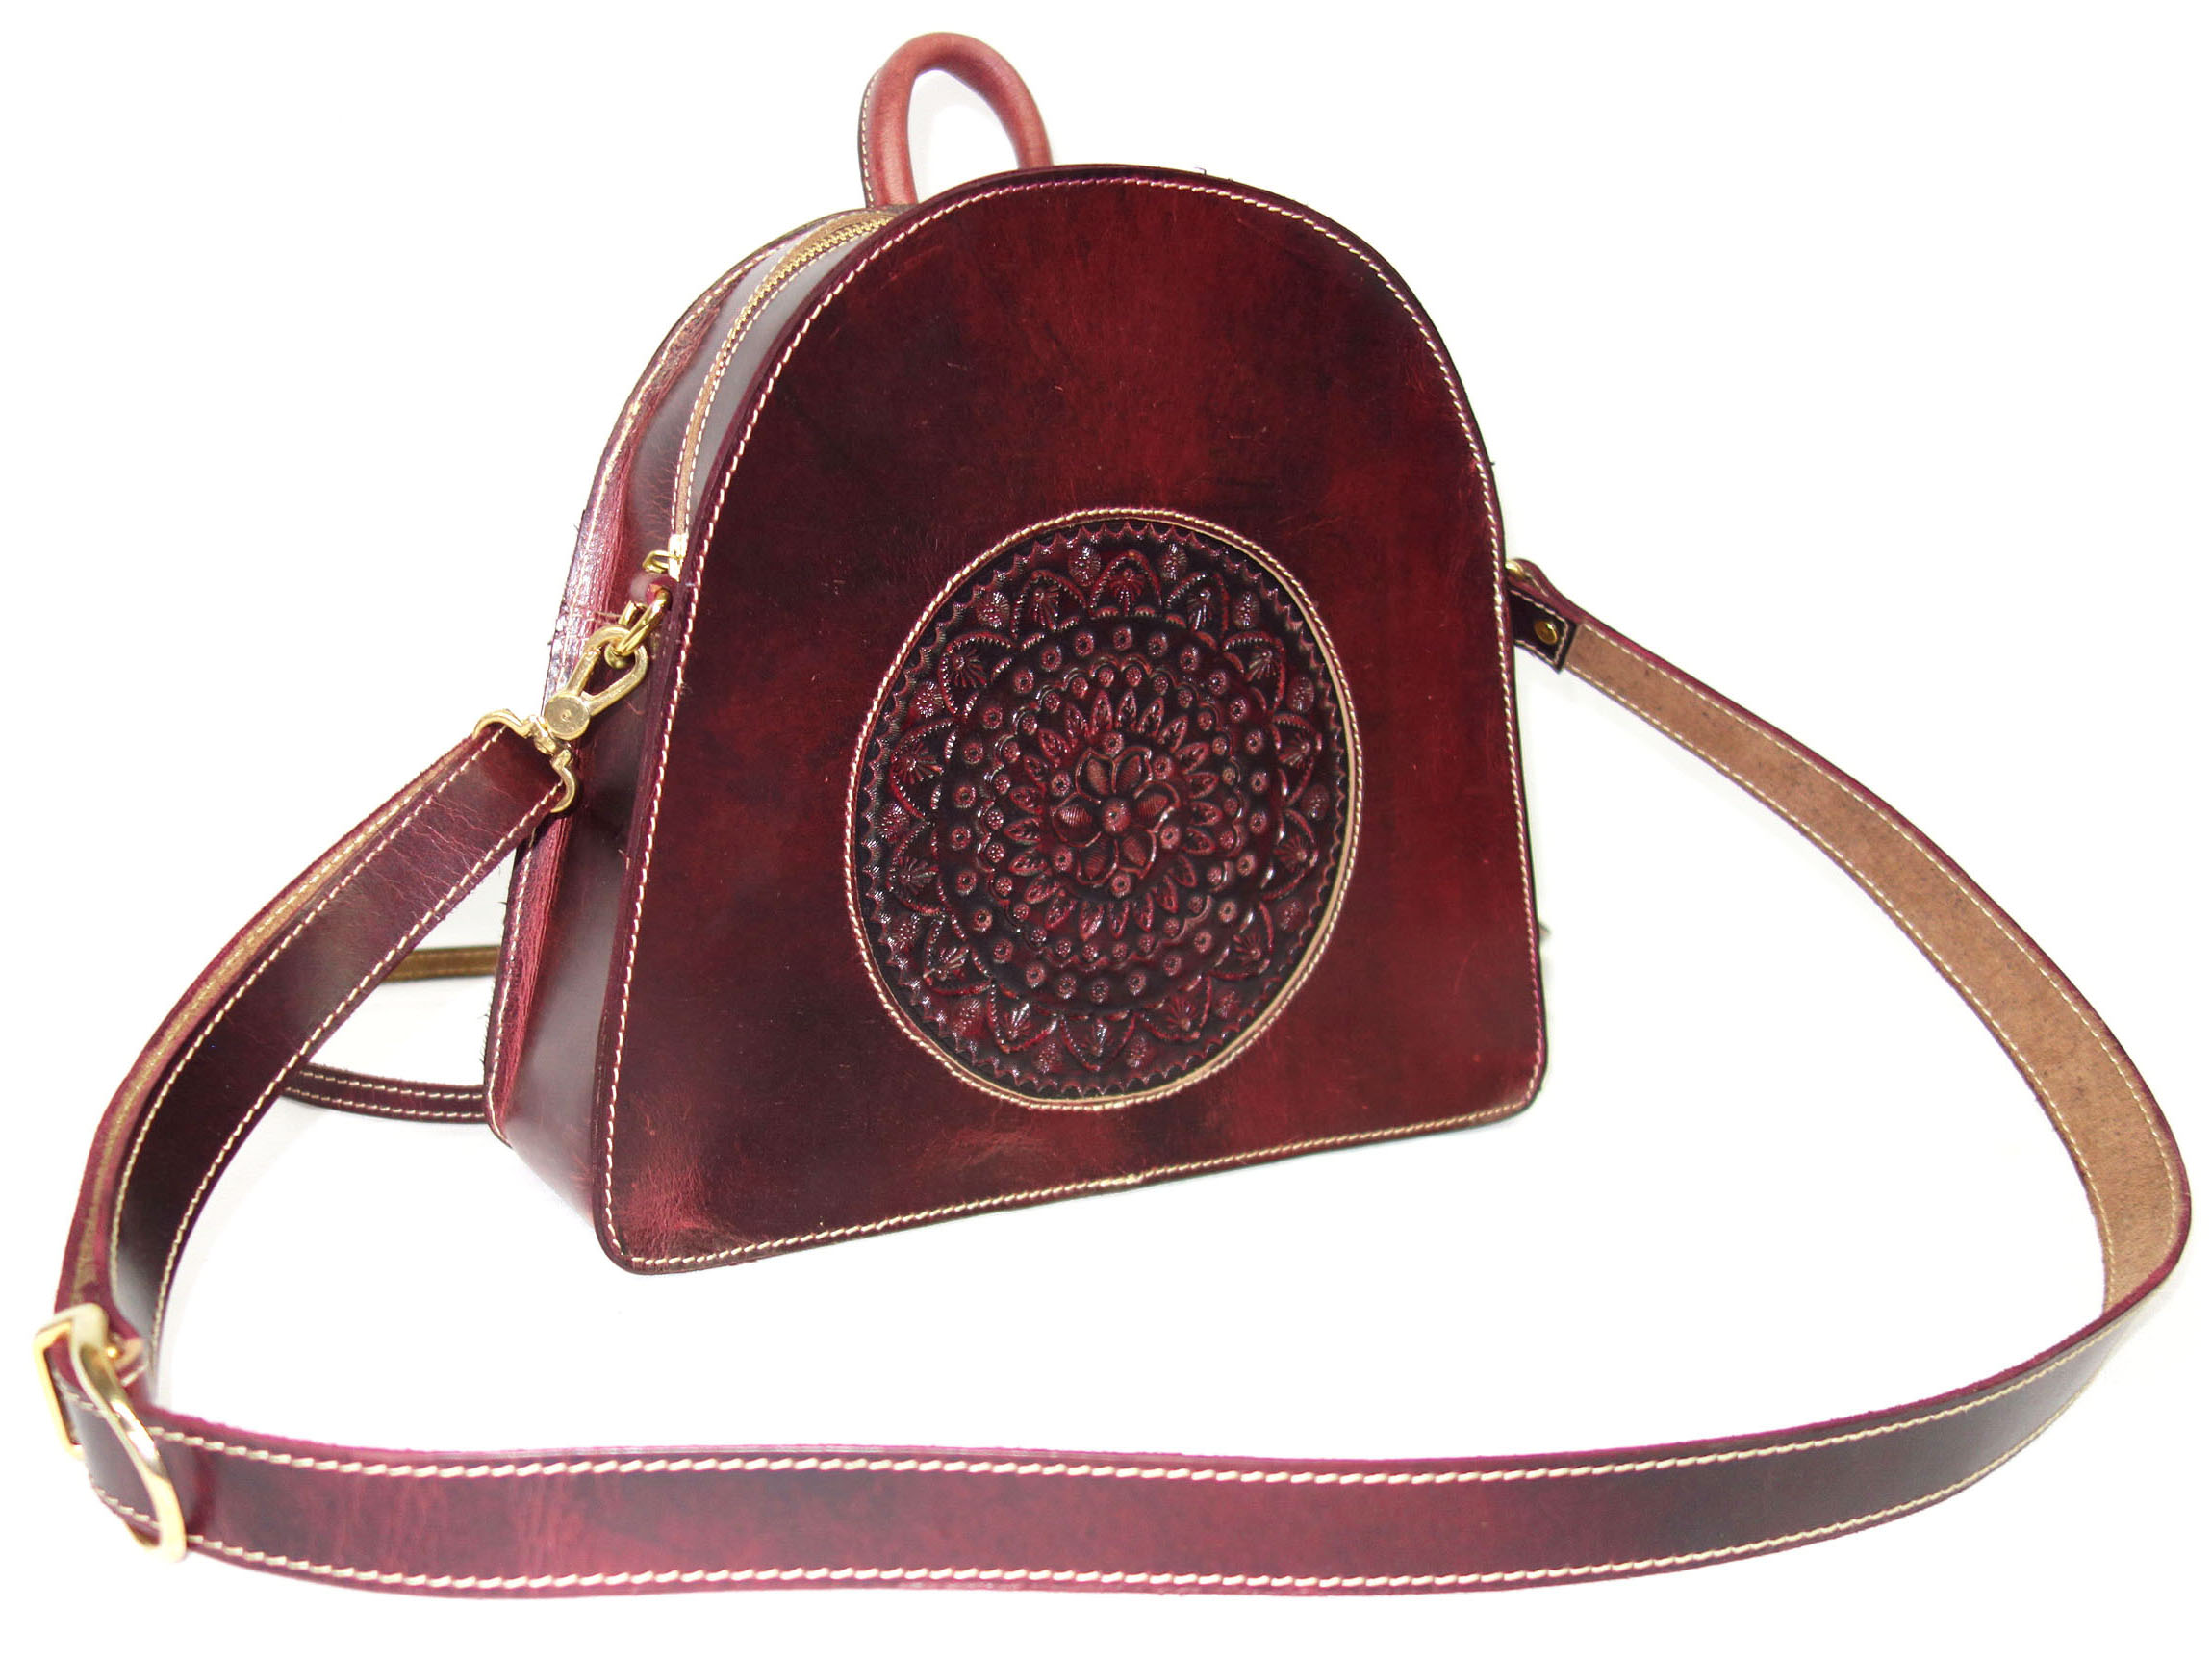 Leather Bag, Hand Crafted and Color with Shoulder Strap for Woman Vintage Finish (Burgundy)